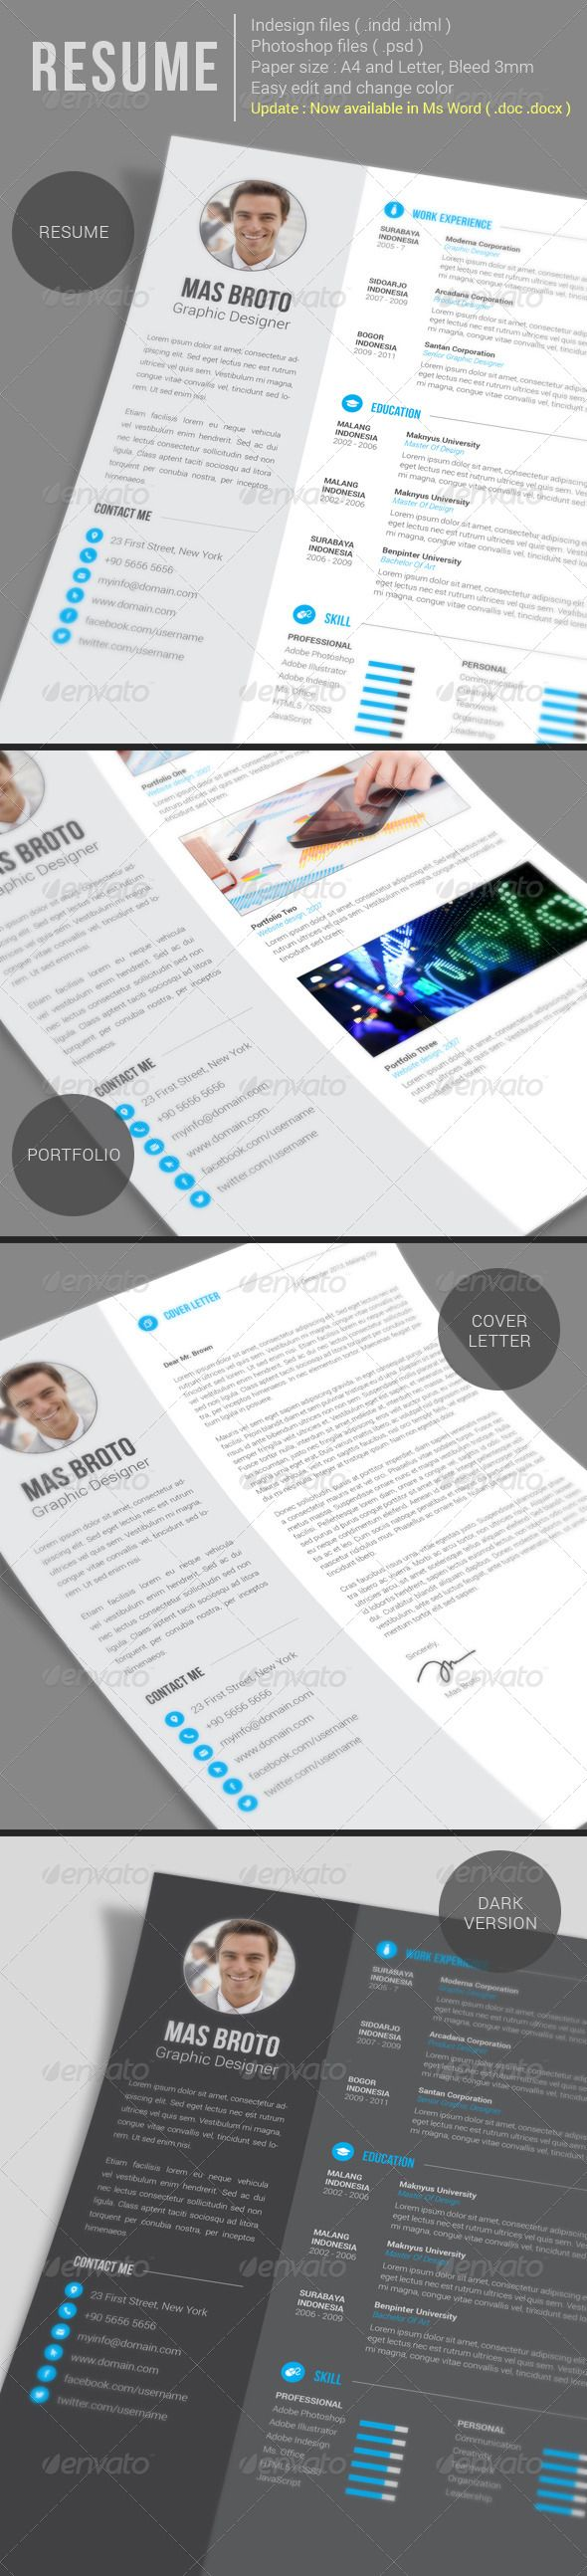 Nice 1 Page Resume Format For Freshers Thin 1.5 Inch Circle Template Regular 10 Best Resume Writers 10 Off Coupon Template Young 12 Week Calendar Template Gray17 Worst Things To Say On Your Resume Business Insider 113 Best Images About CV Template On Pinterest | Cover Letters ..